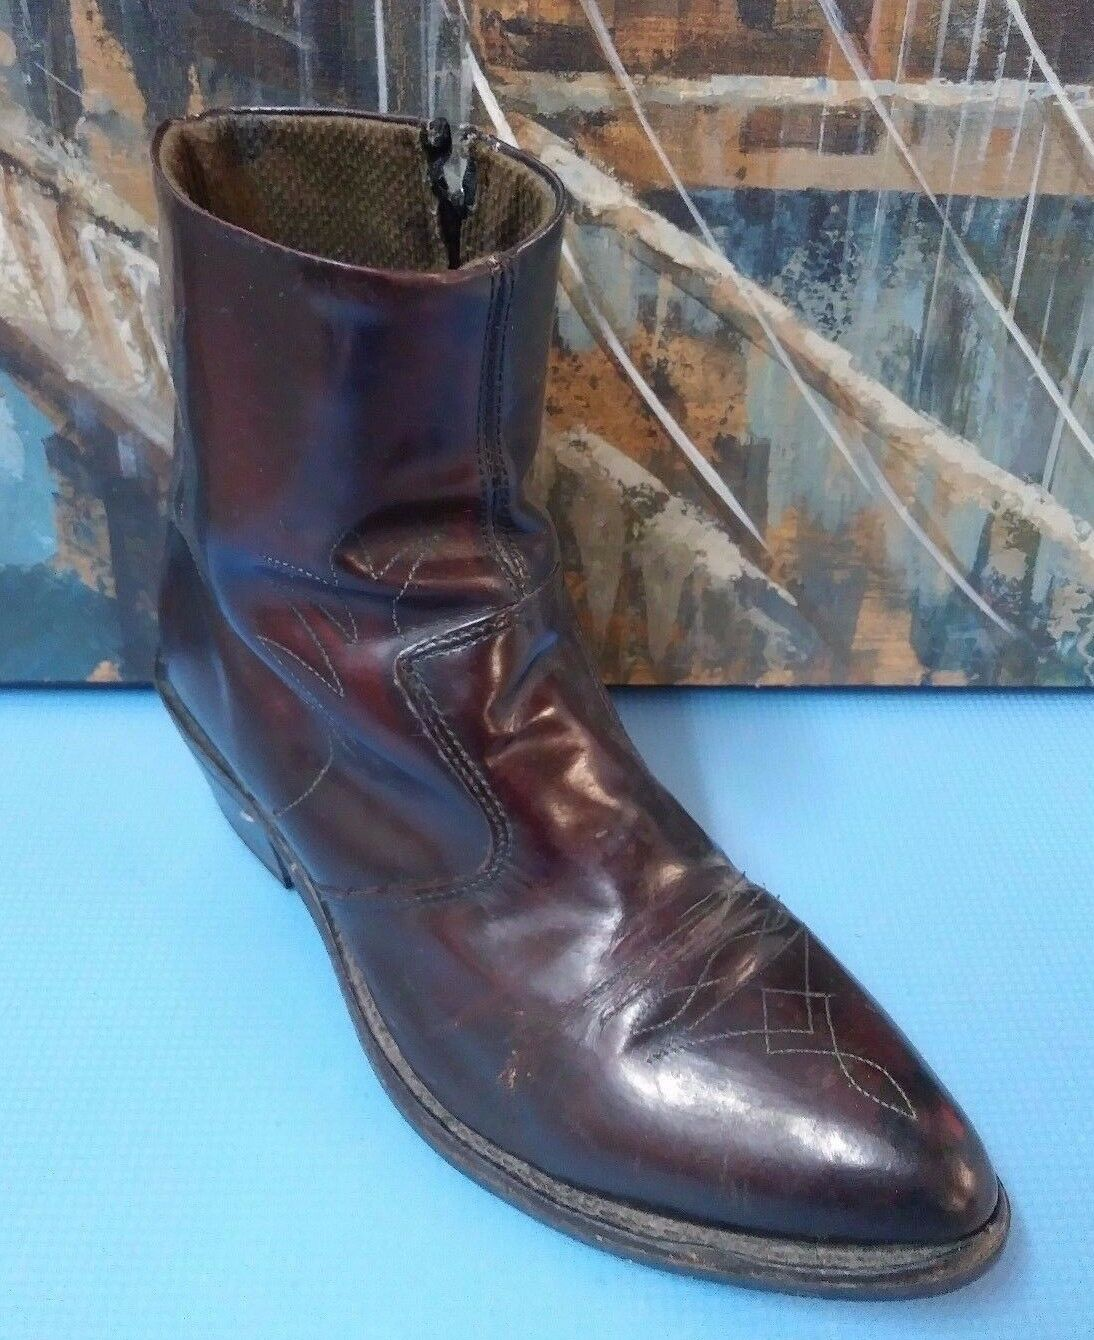 Unknown Men's Side Zip Up Leather Ankle Dress Boots Black Cherry 1952, SZ 8.5EE